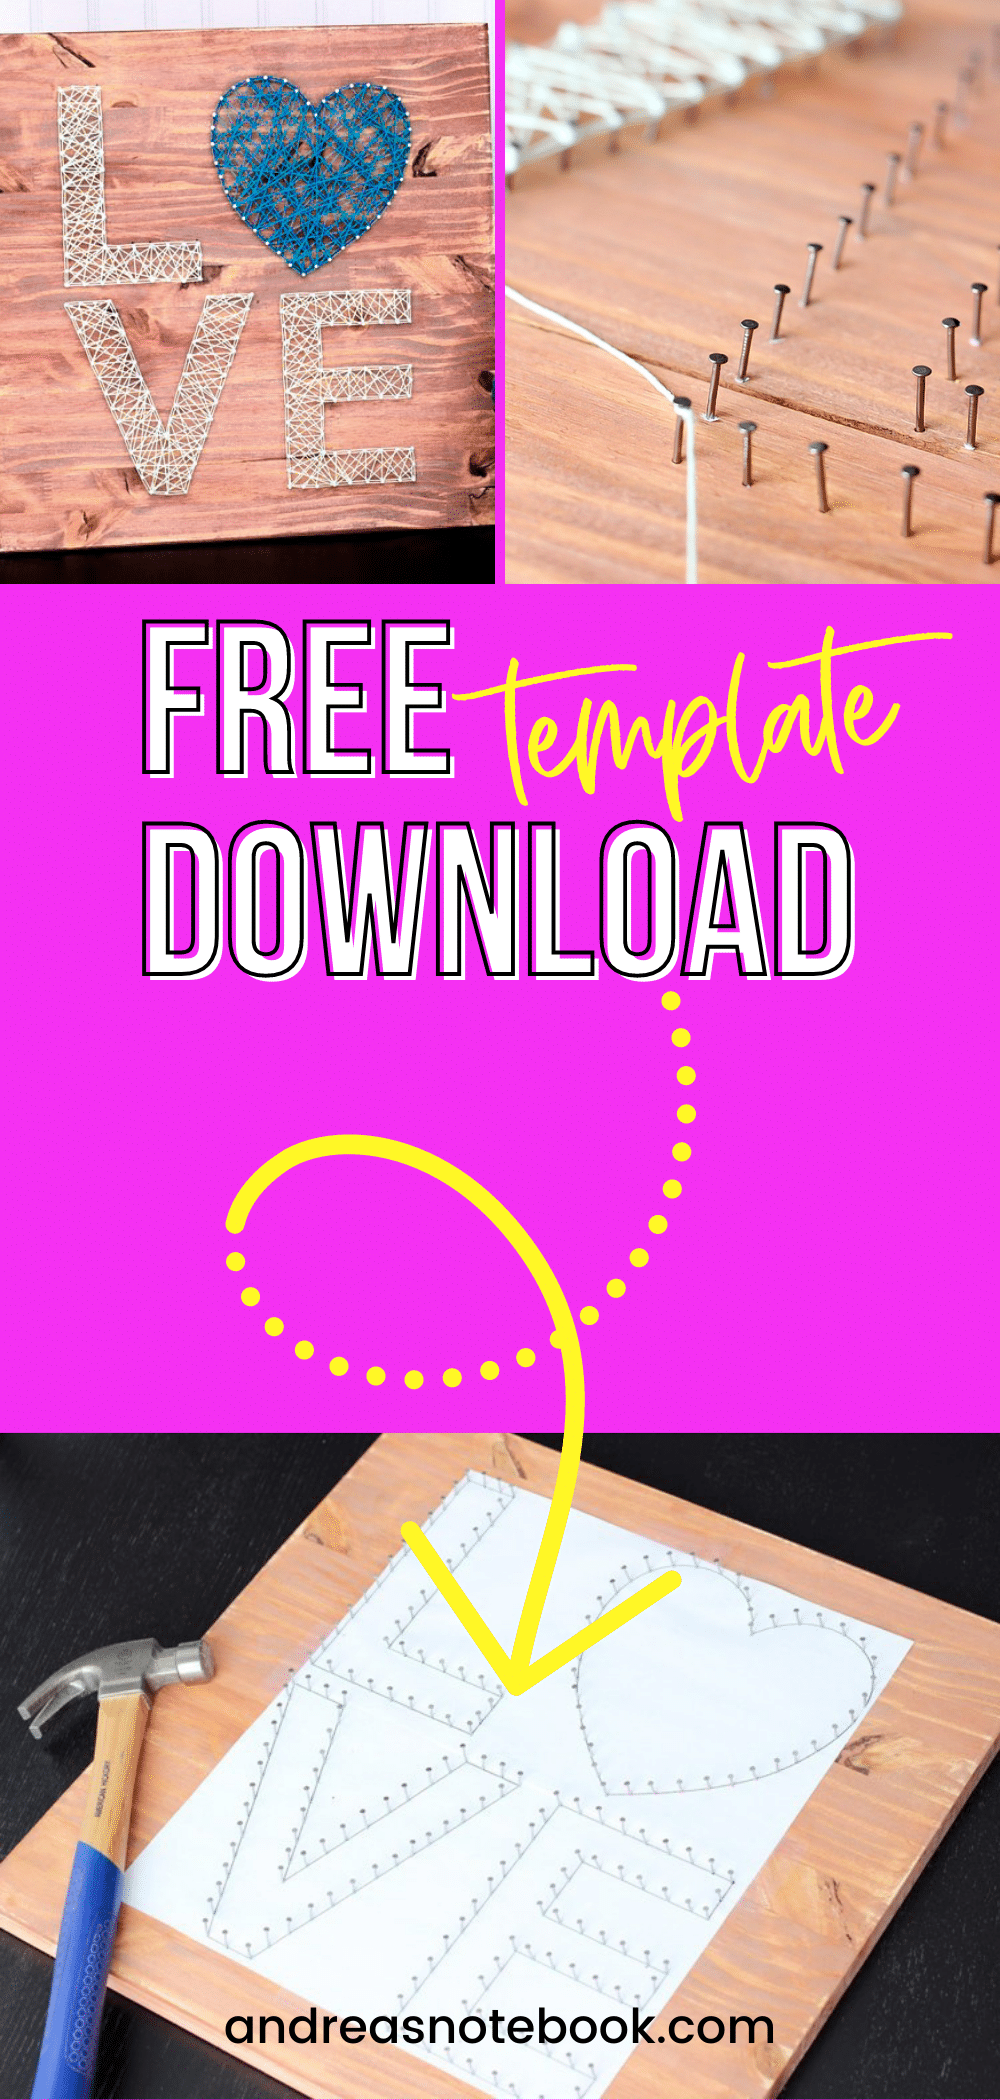 free template download with arrow pointing to l-o-v-e template on board